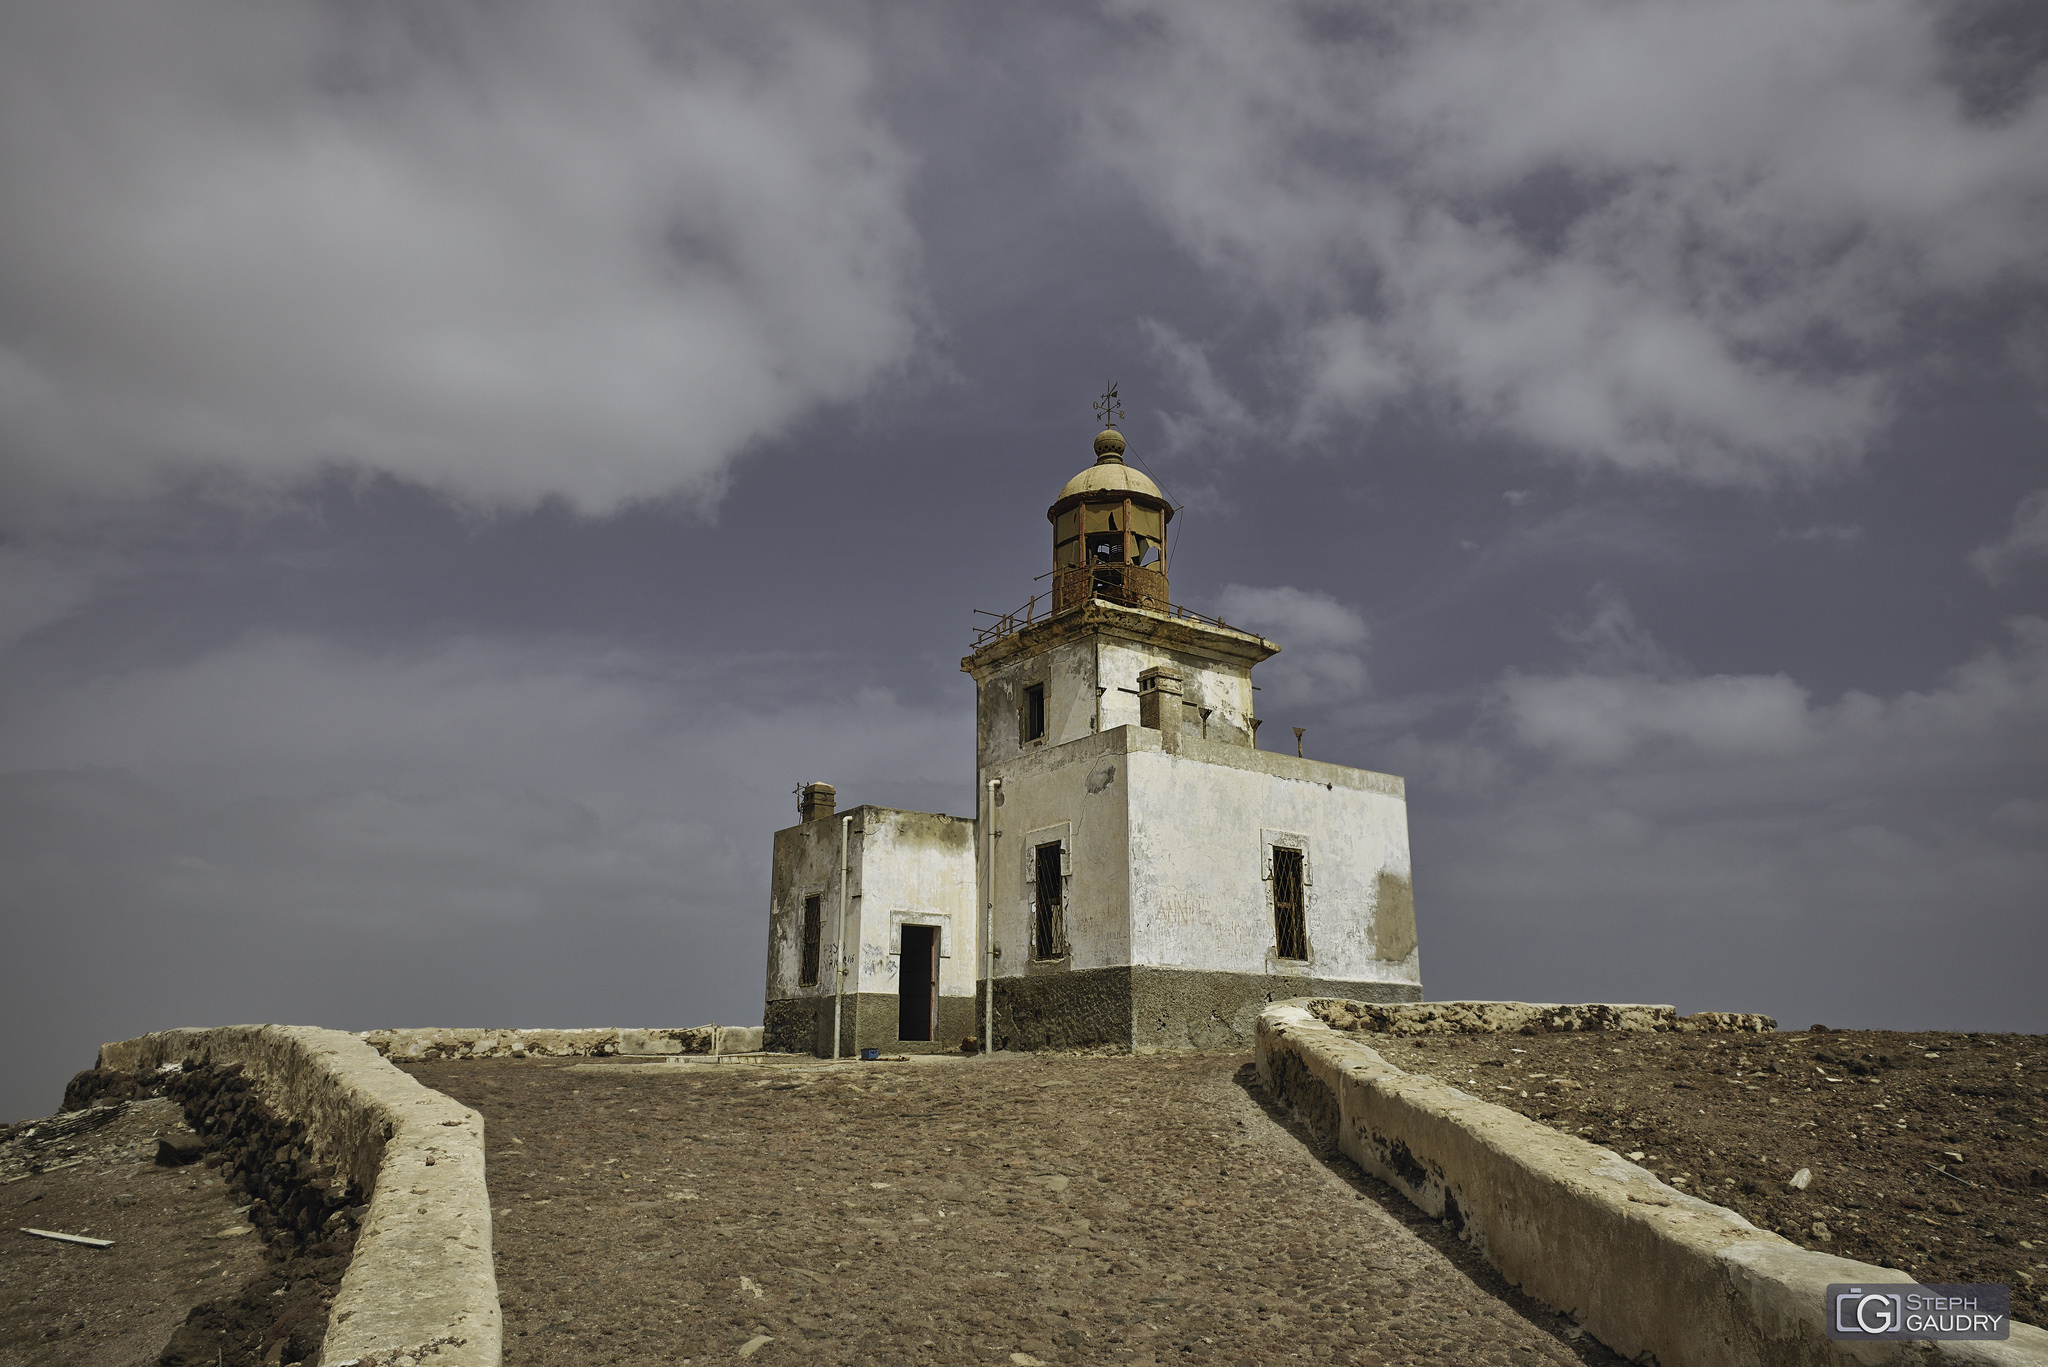 Farol Morro Negro - Boa Vista (FX version)